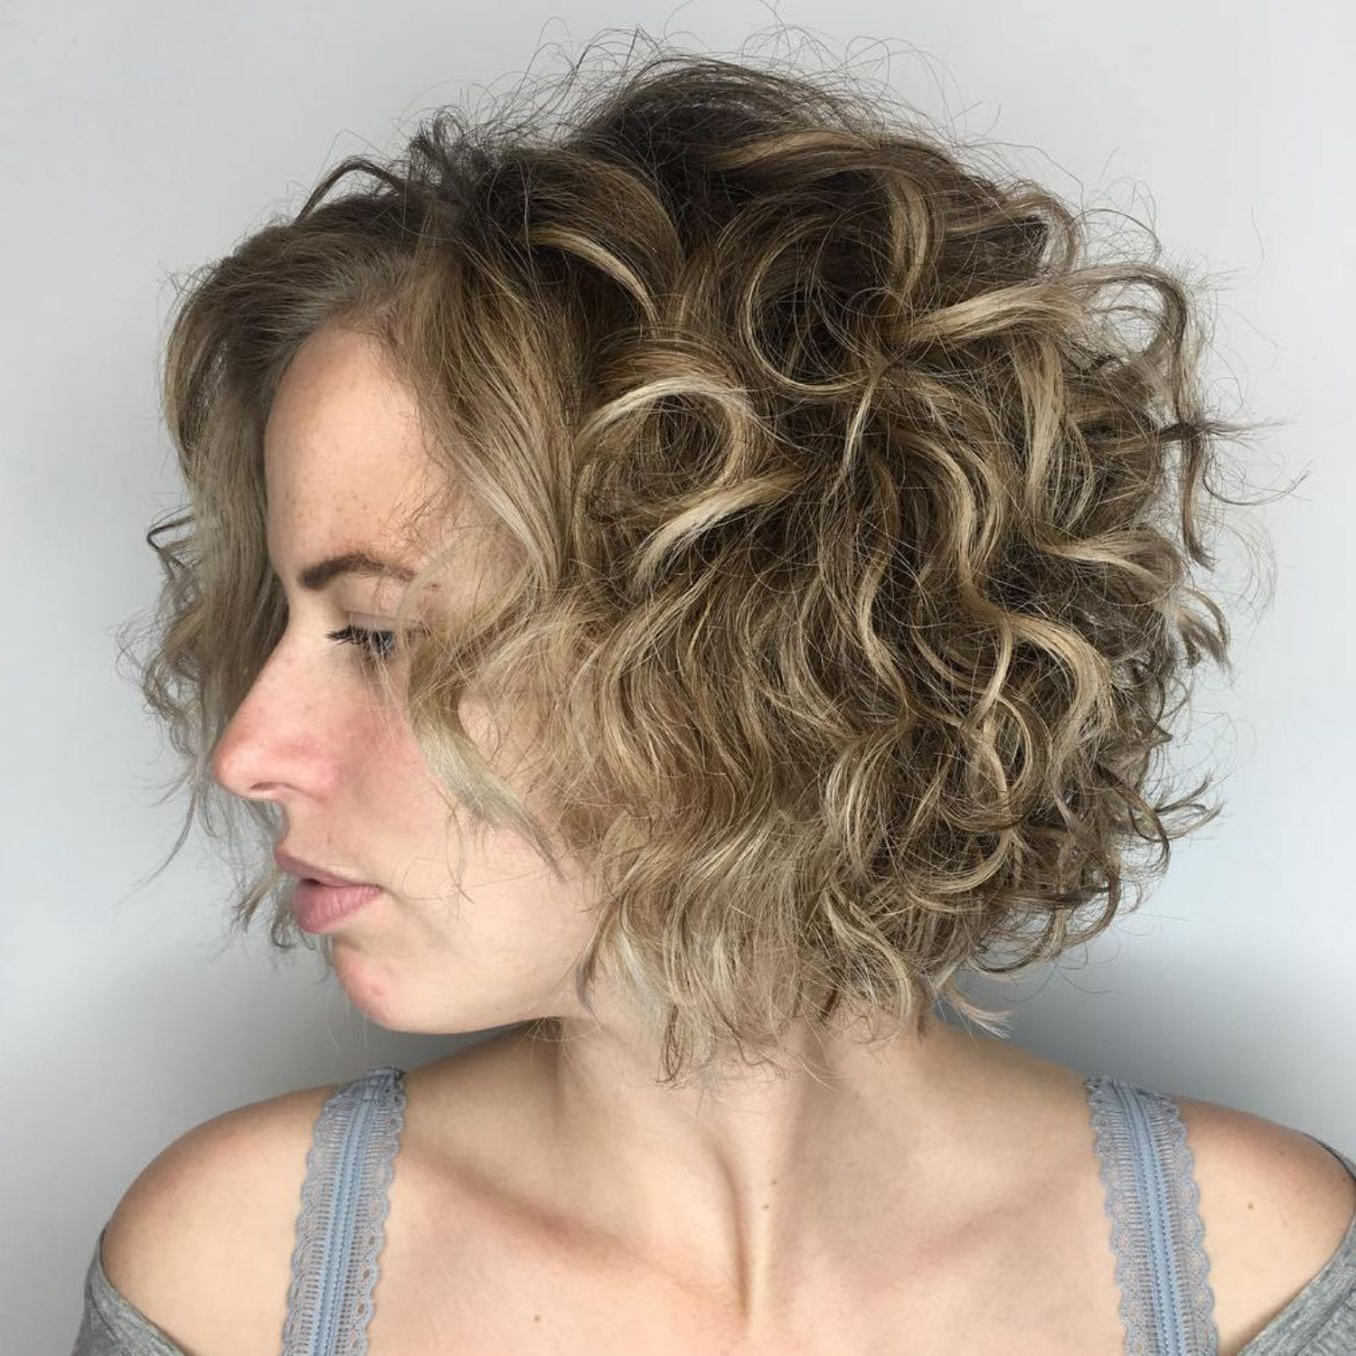 60 Styles And Cuts For Naturally Curly Hair In 2018 | Hair <3 Throughout Angelic Blonde Balayage Bob Hairstyles With Curls (View 5 of 25)